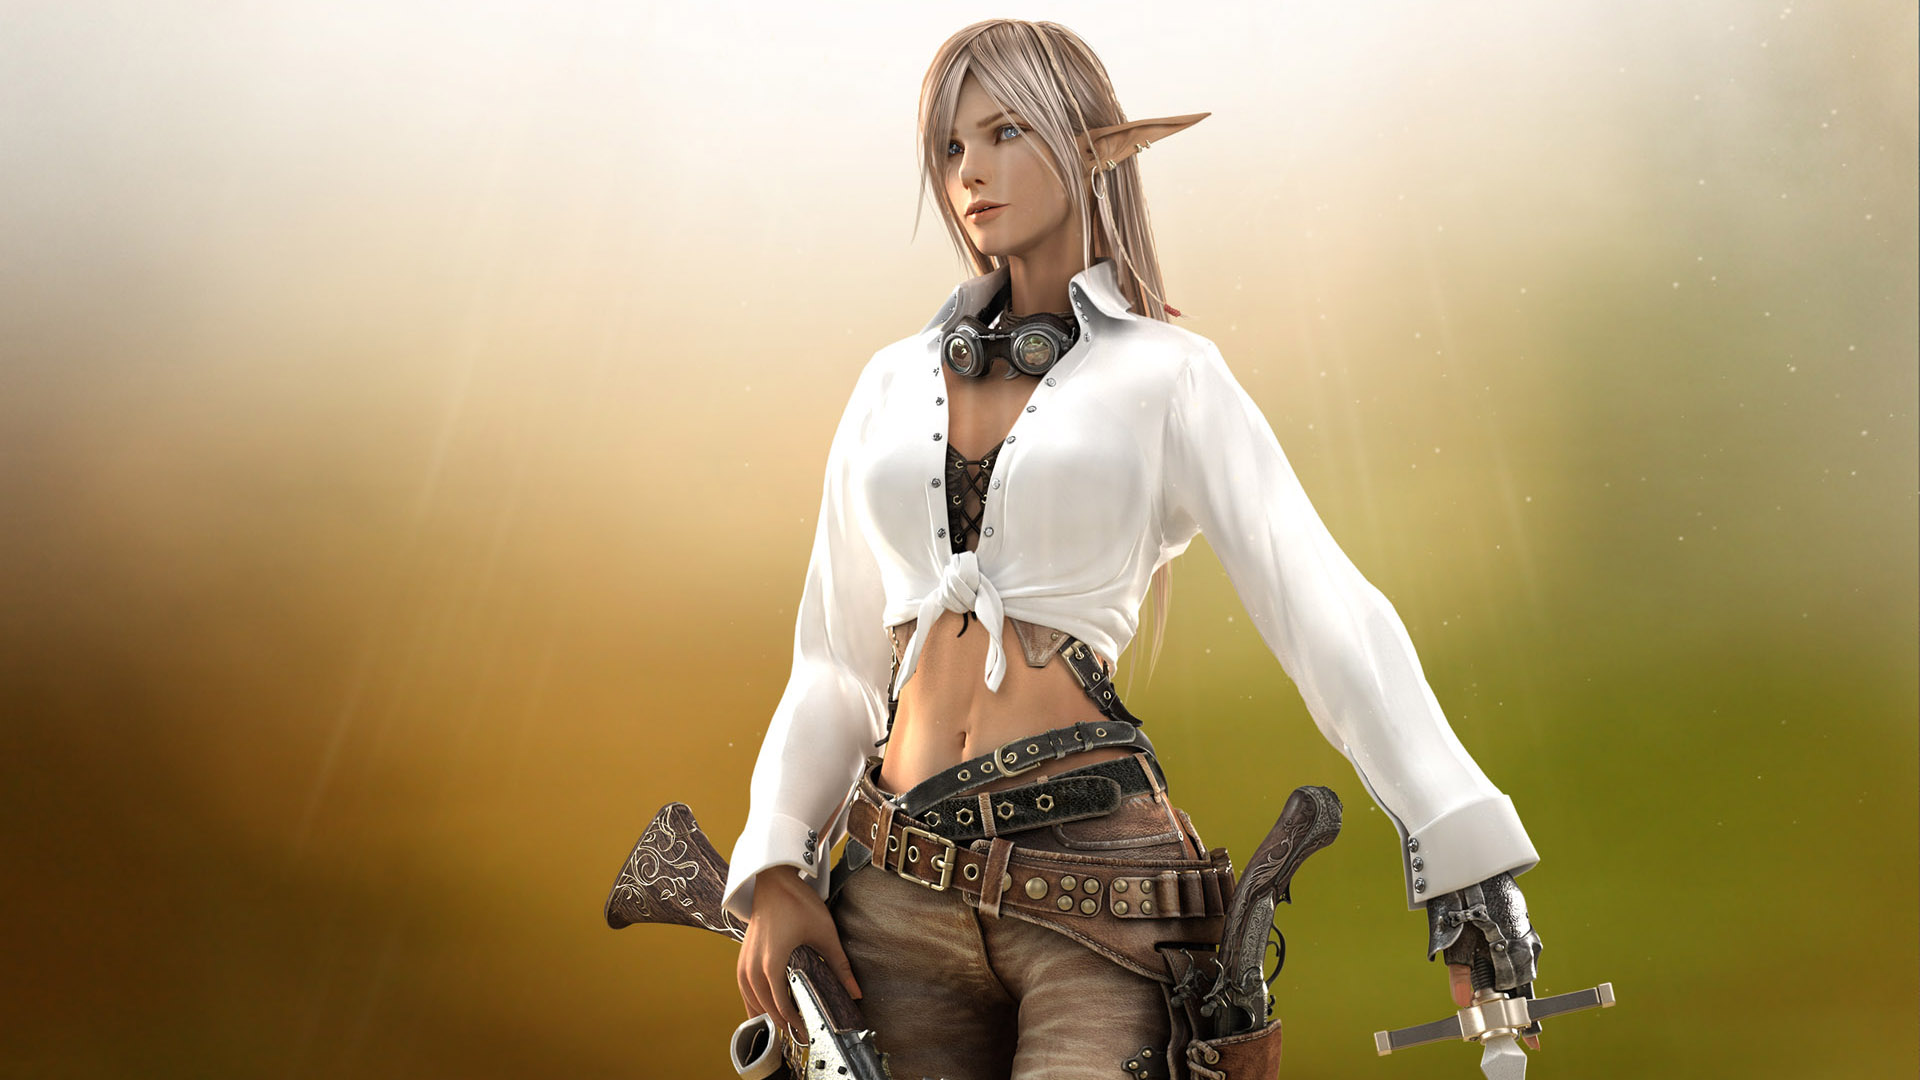 View And Download 3D Girls Wallpapers ...